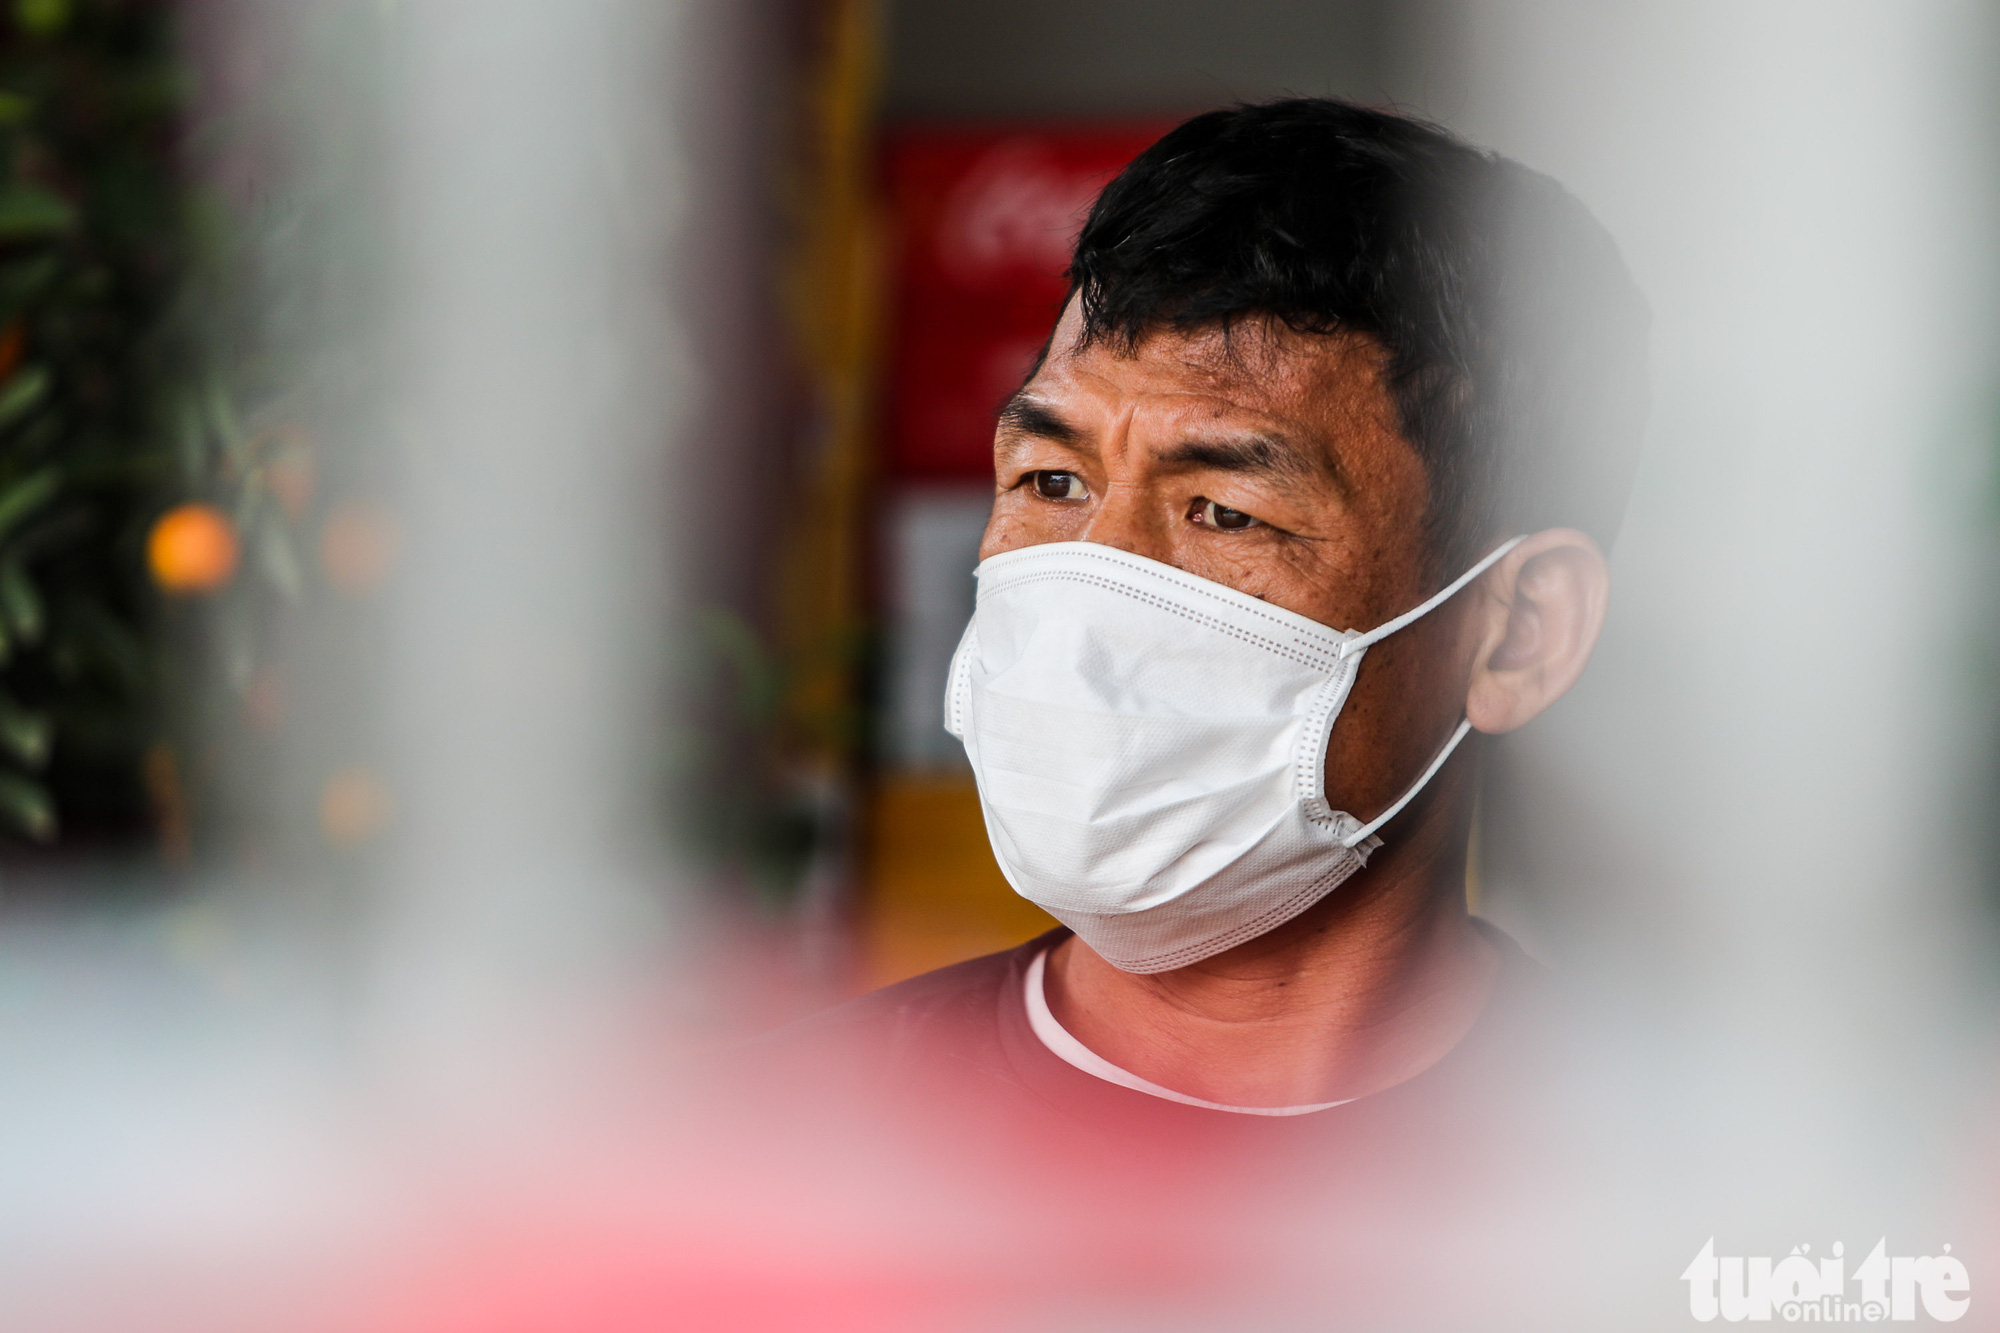 Nguyen Van Hung, a resident in Ai Van Village in Son Loi Commune, Binh Xuyen District, Vinh Phuc Province, Vietnam, is photographed wearing a face mask on February 11, 2020. Hung, whose family business has been affected by COVID-19, says he is concerned about not having enough face masks. Photo: Nguyen Khanh / Tuoi Tre